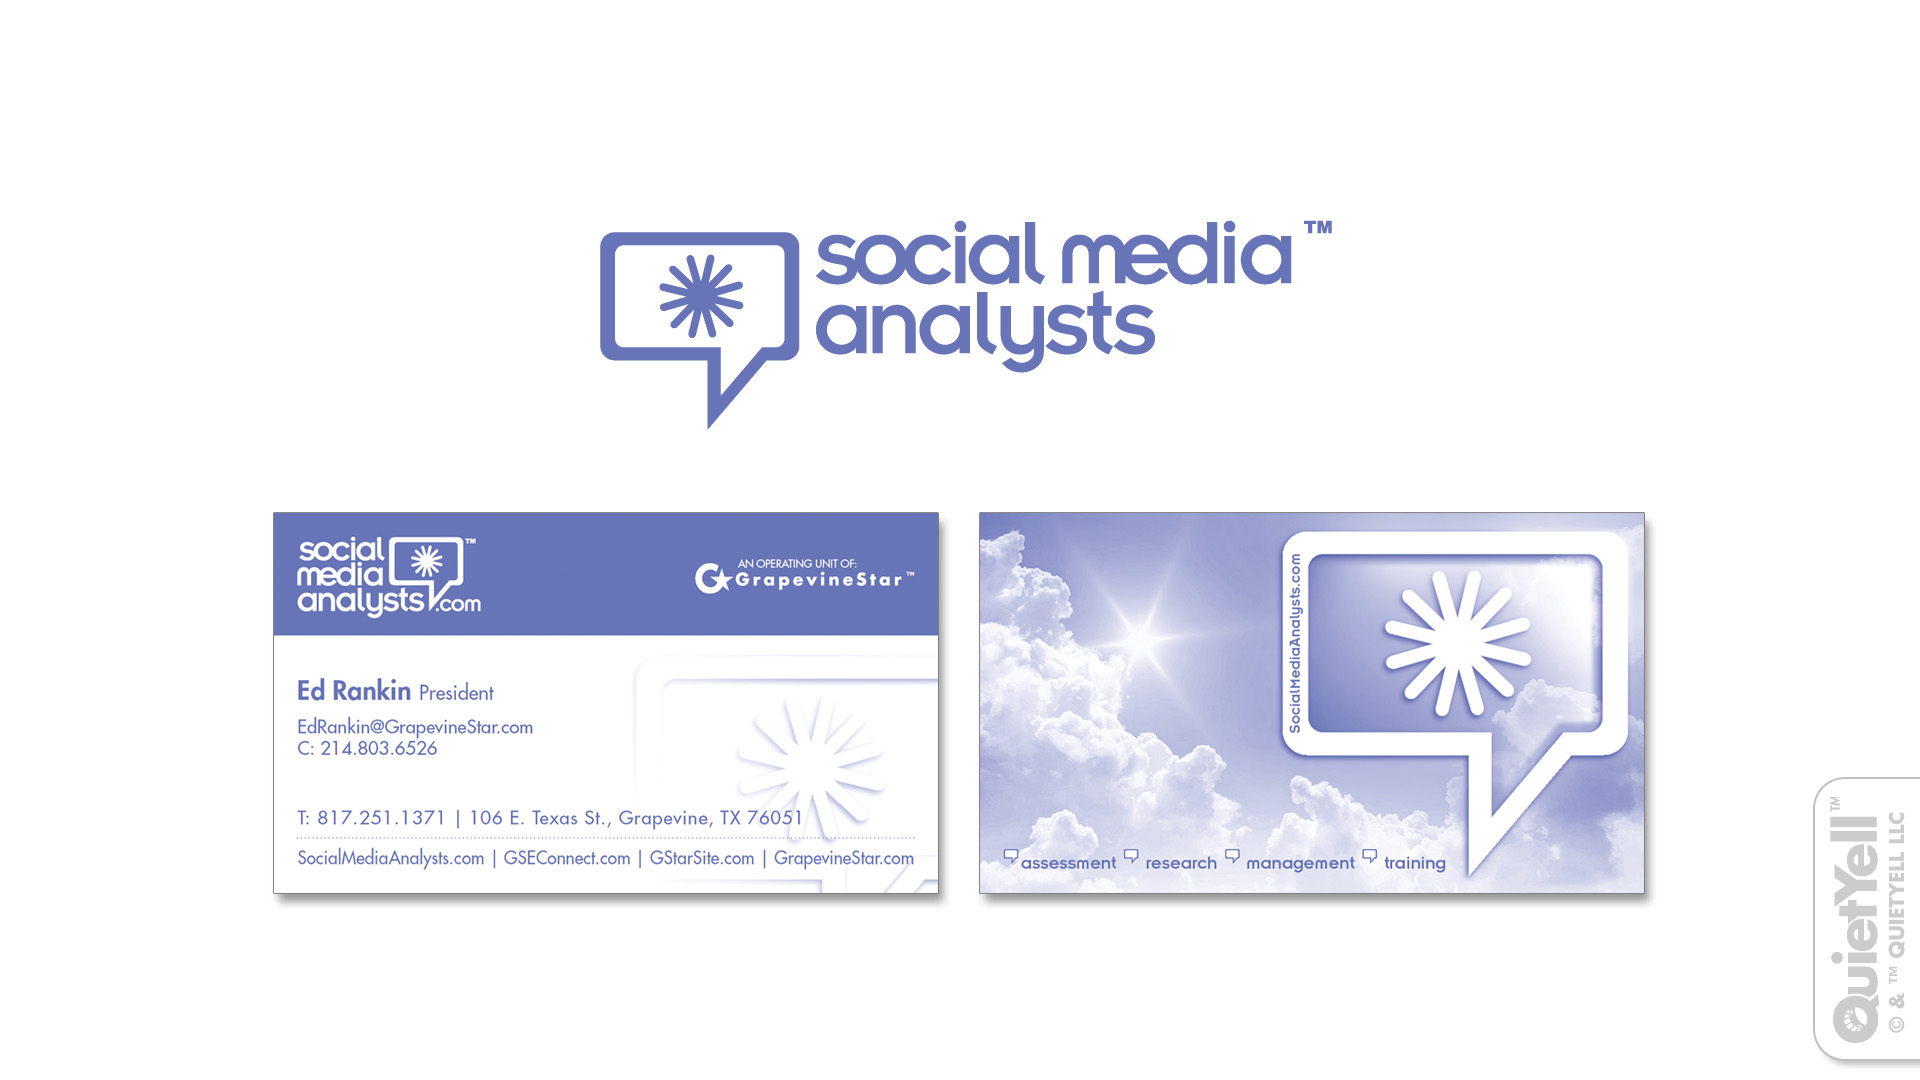 quietyell_design_full_socialmediaanalysts_businesscards_01